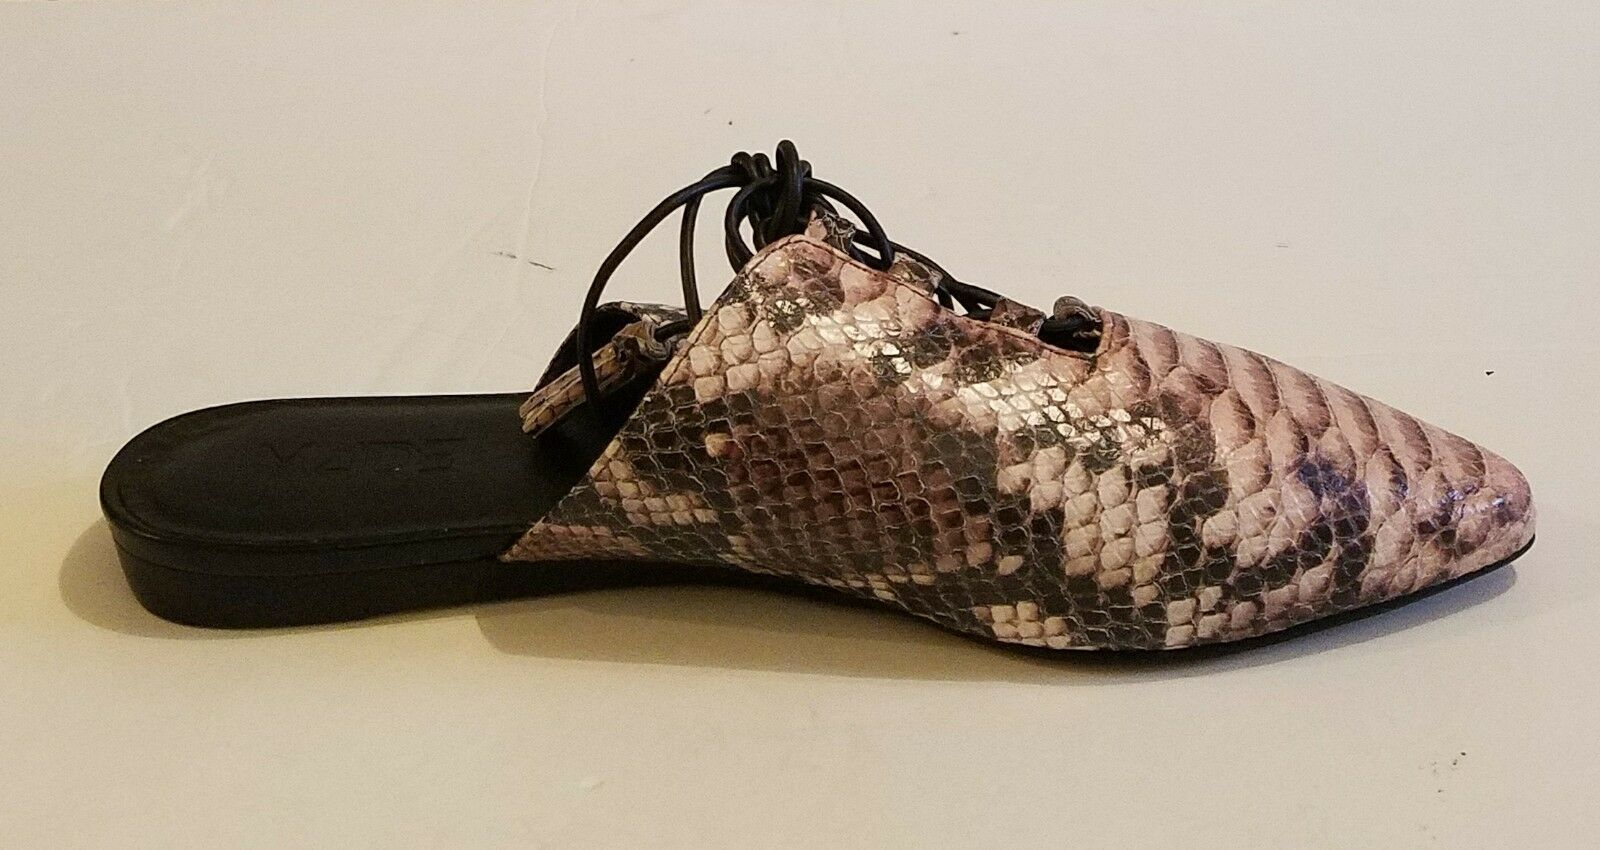 M4D3 Della Della Della Dusty Rosa Snakeskin Embossed leather Ankle Wrap Flat Mule sz 9 f5095d